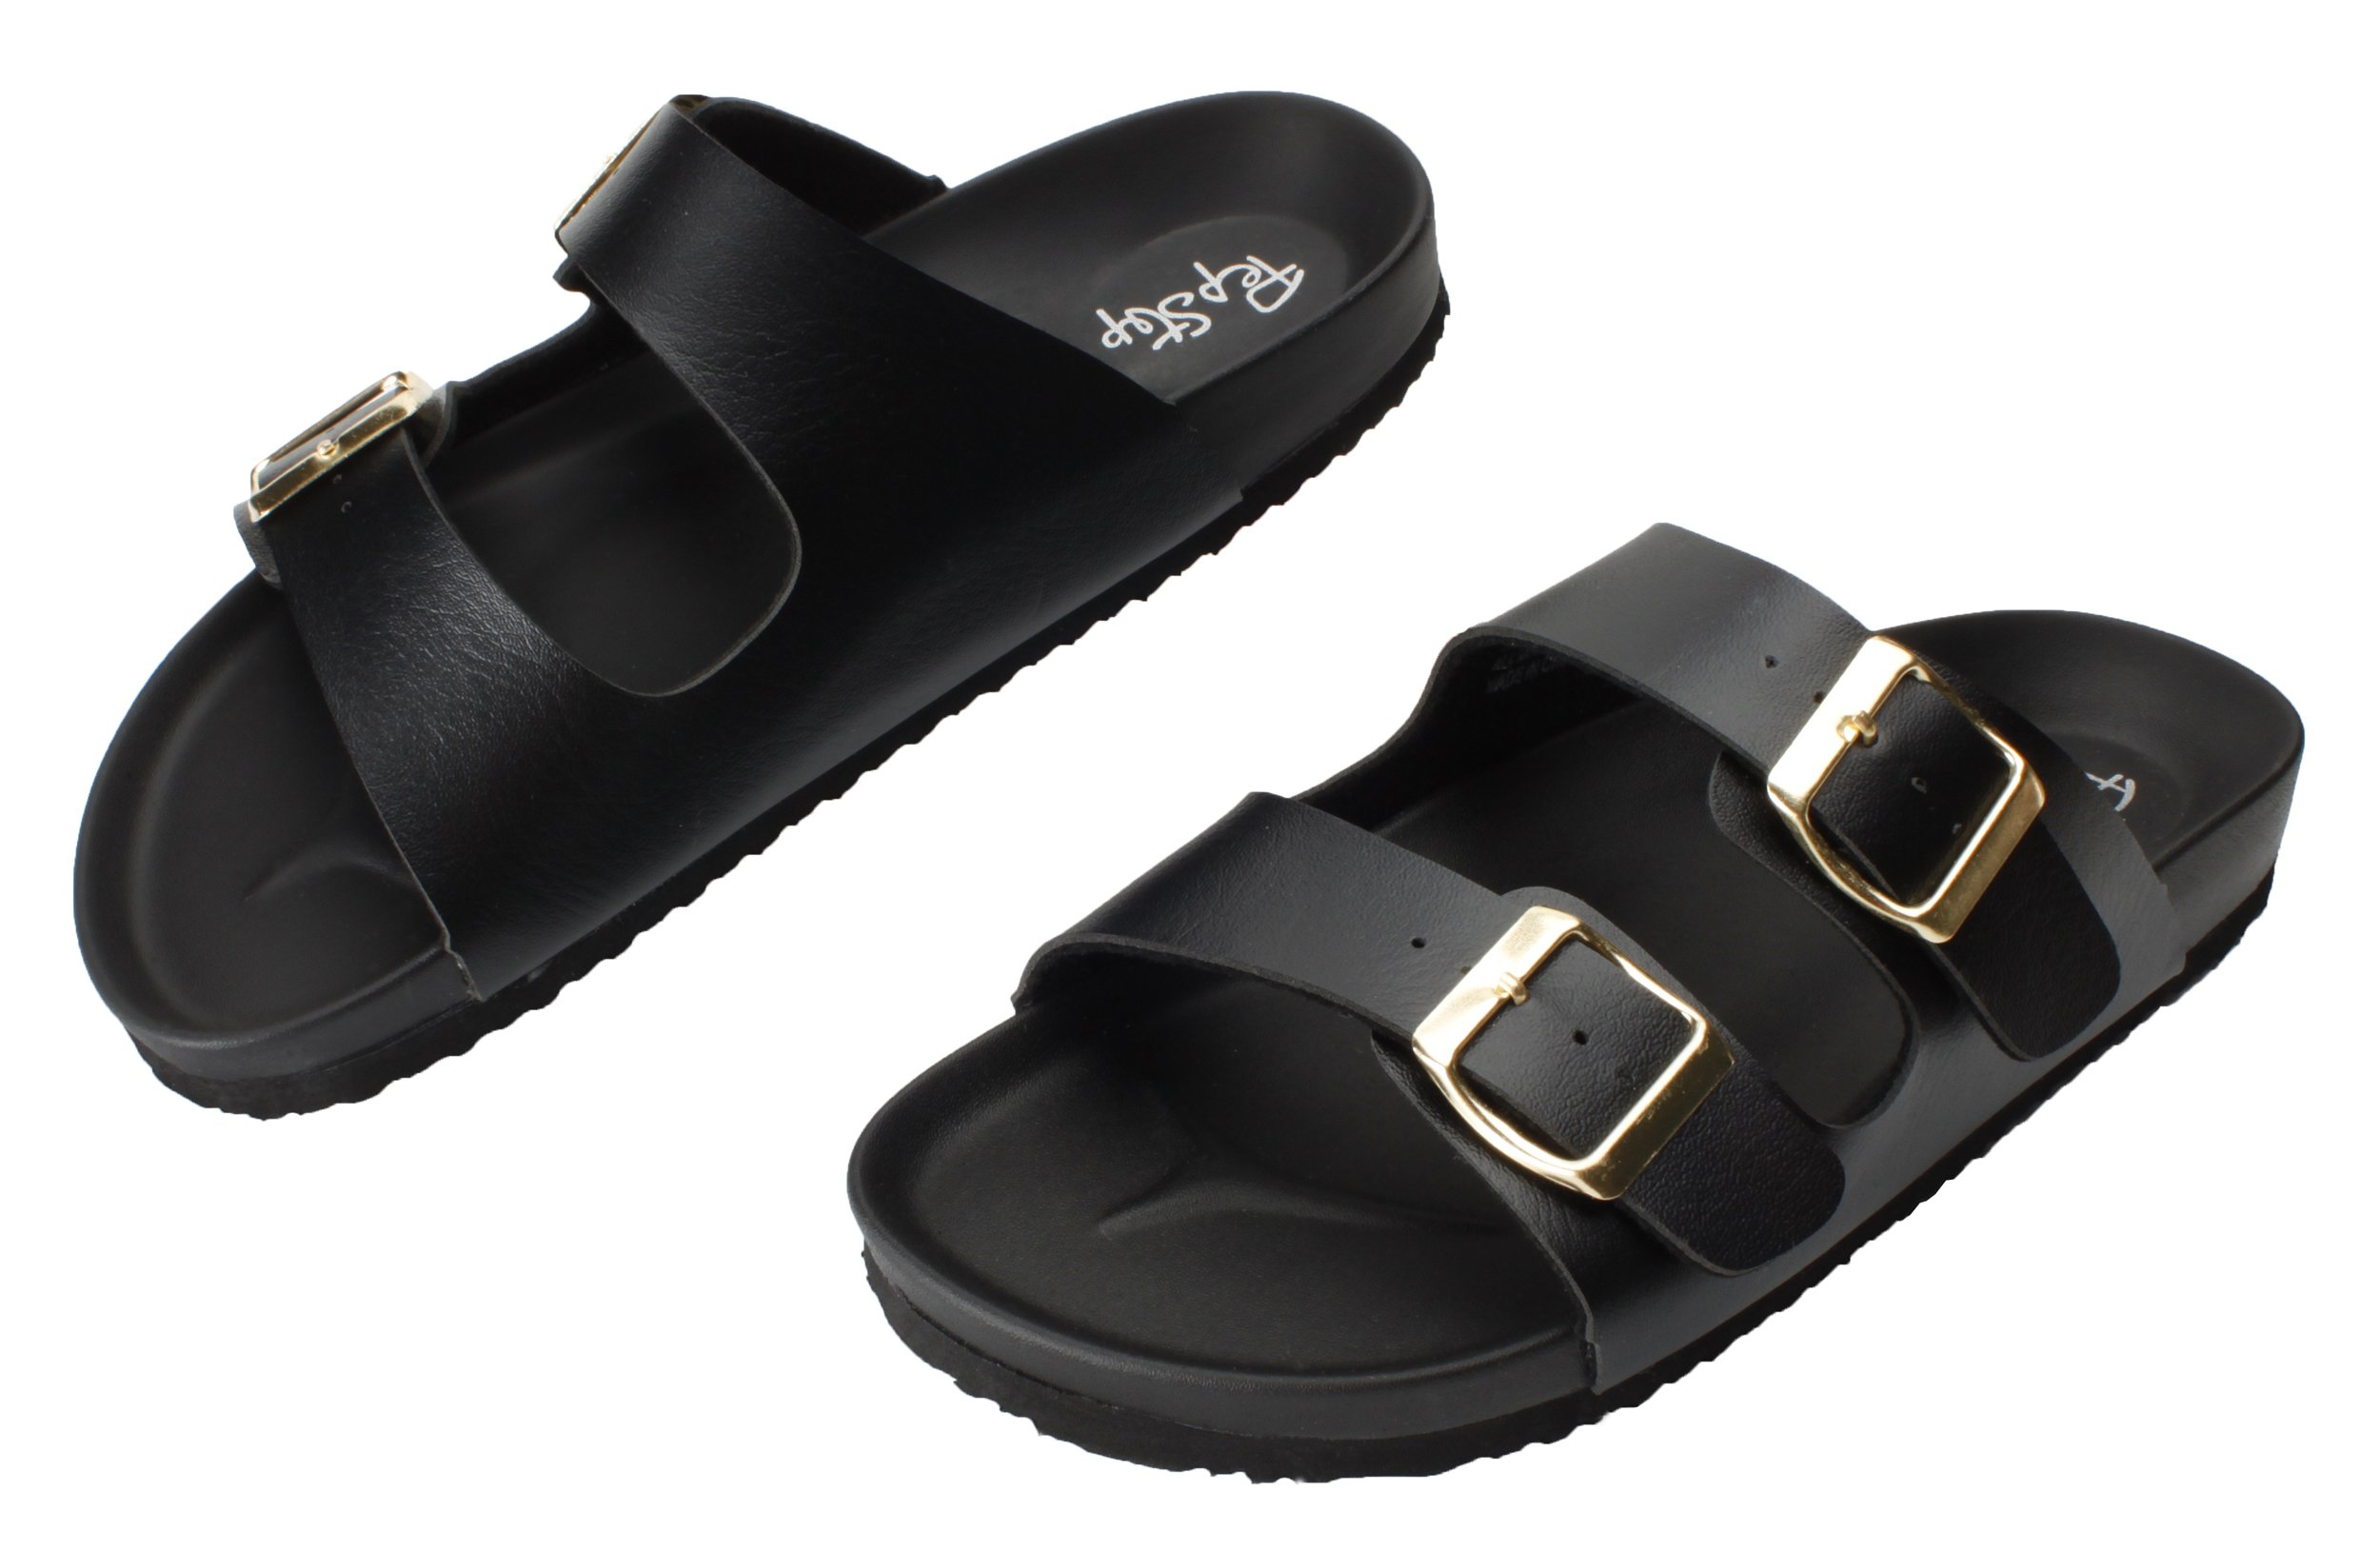 Pepstep Cork Sandals for Women Beach Footbed Thong Sandals Buckle Sandal for Women (9, Black)